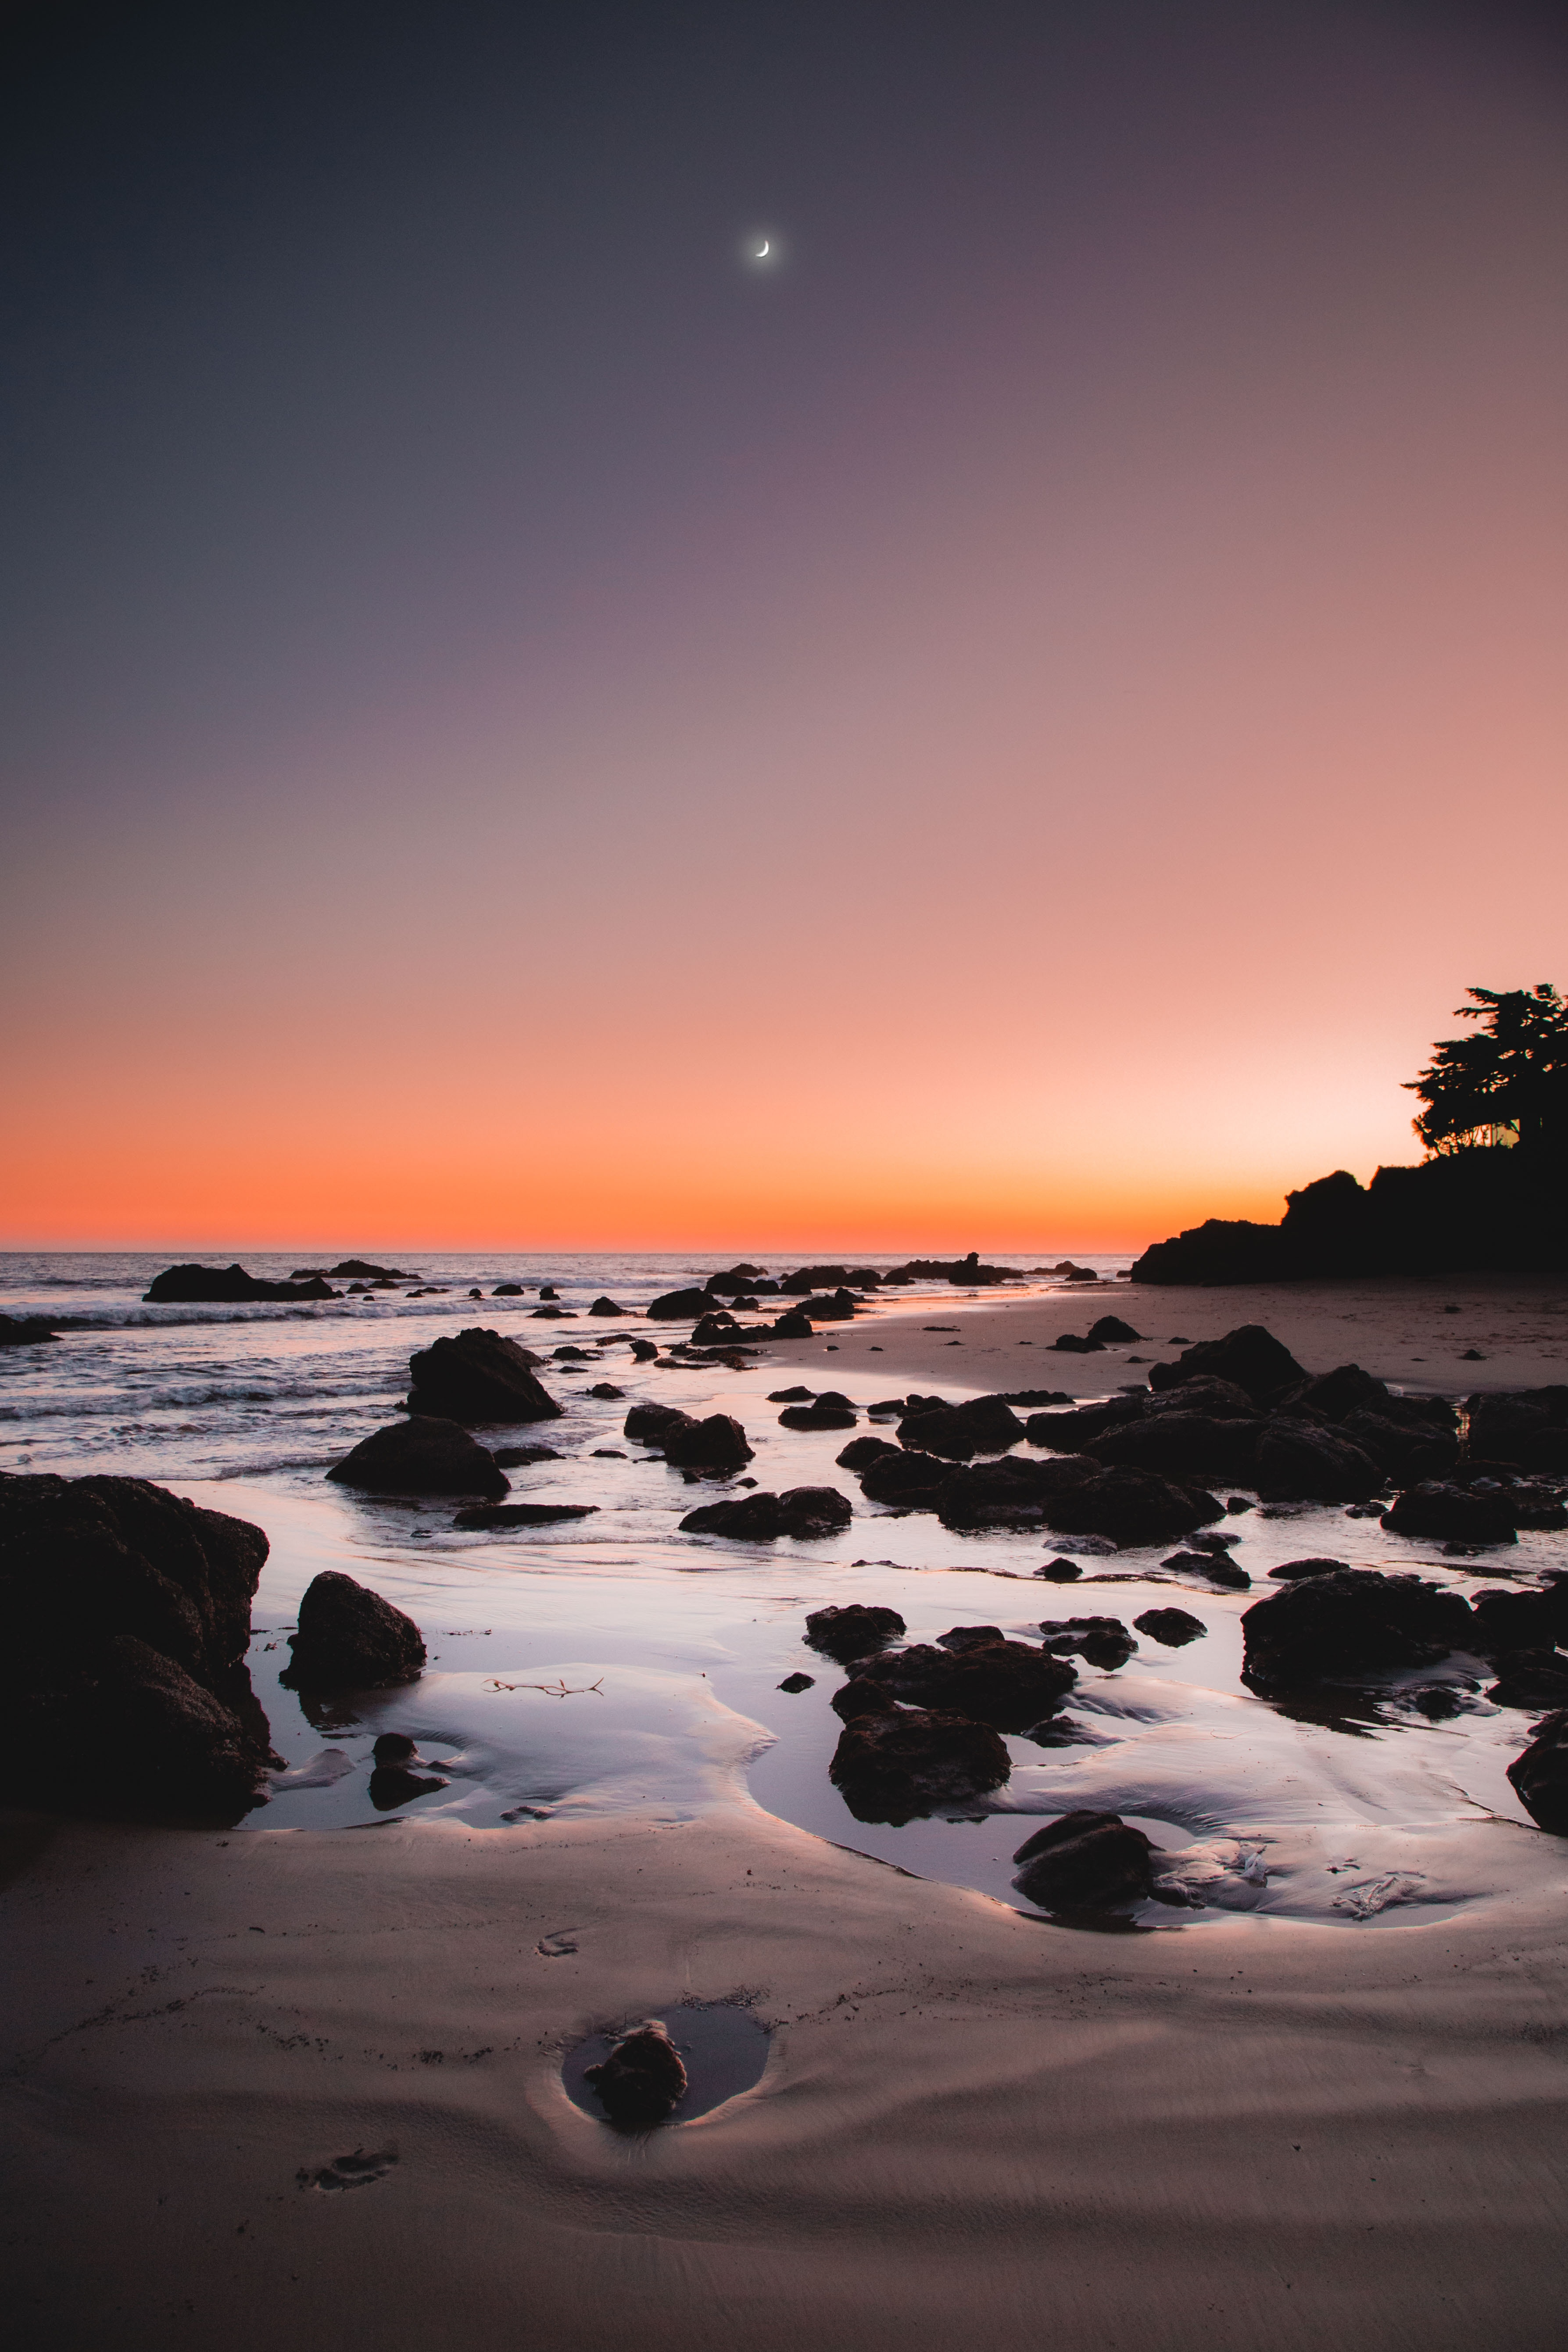 79193 download wallpaper Nature, Sea, Shore, Bank, Sunset, Stones, Sand, Horizon screensavers and pictures for free